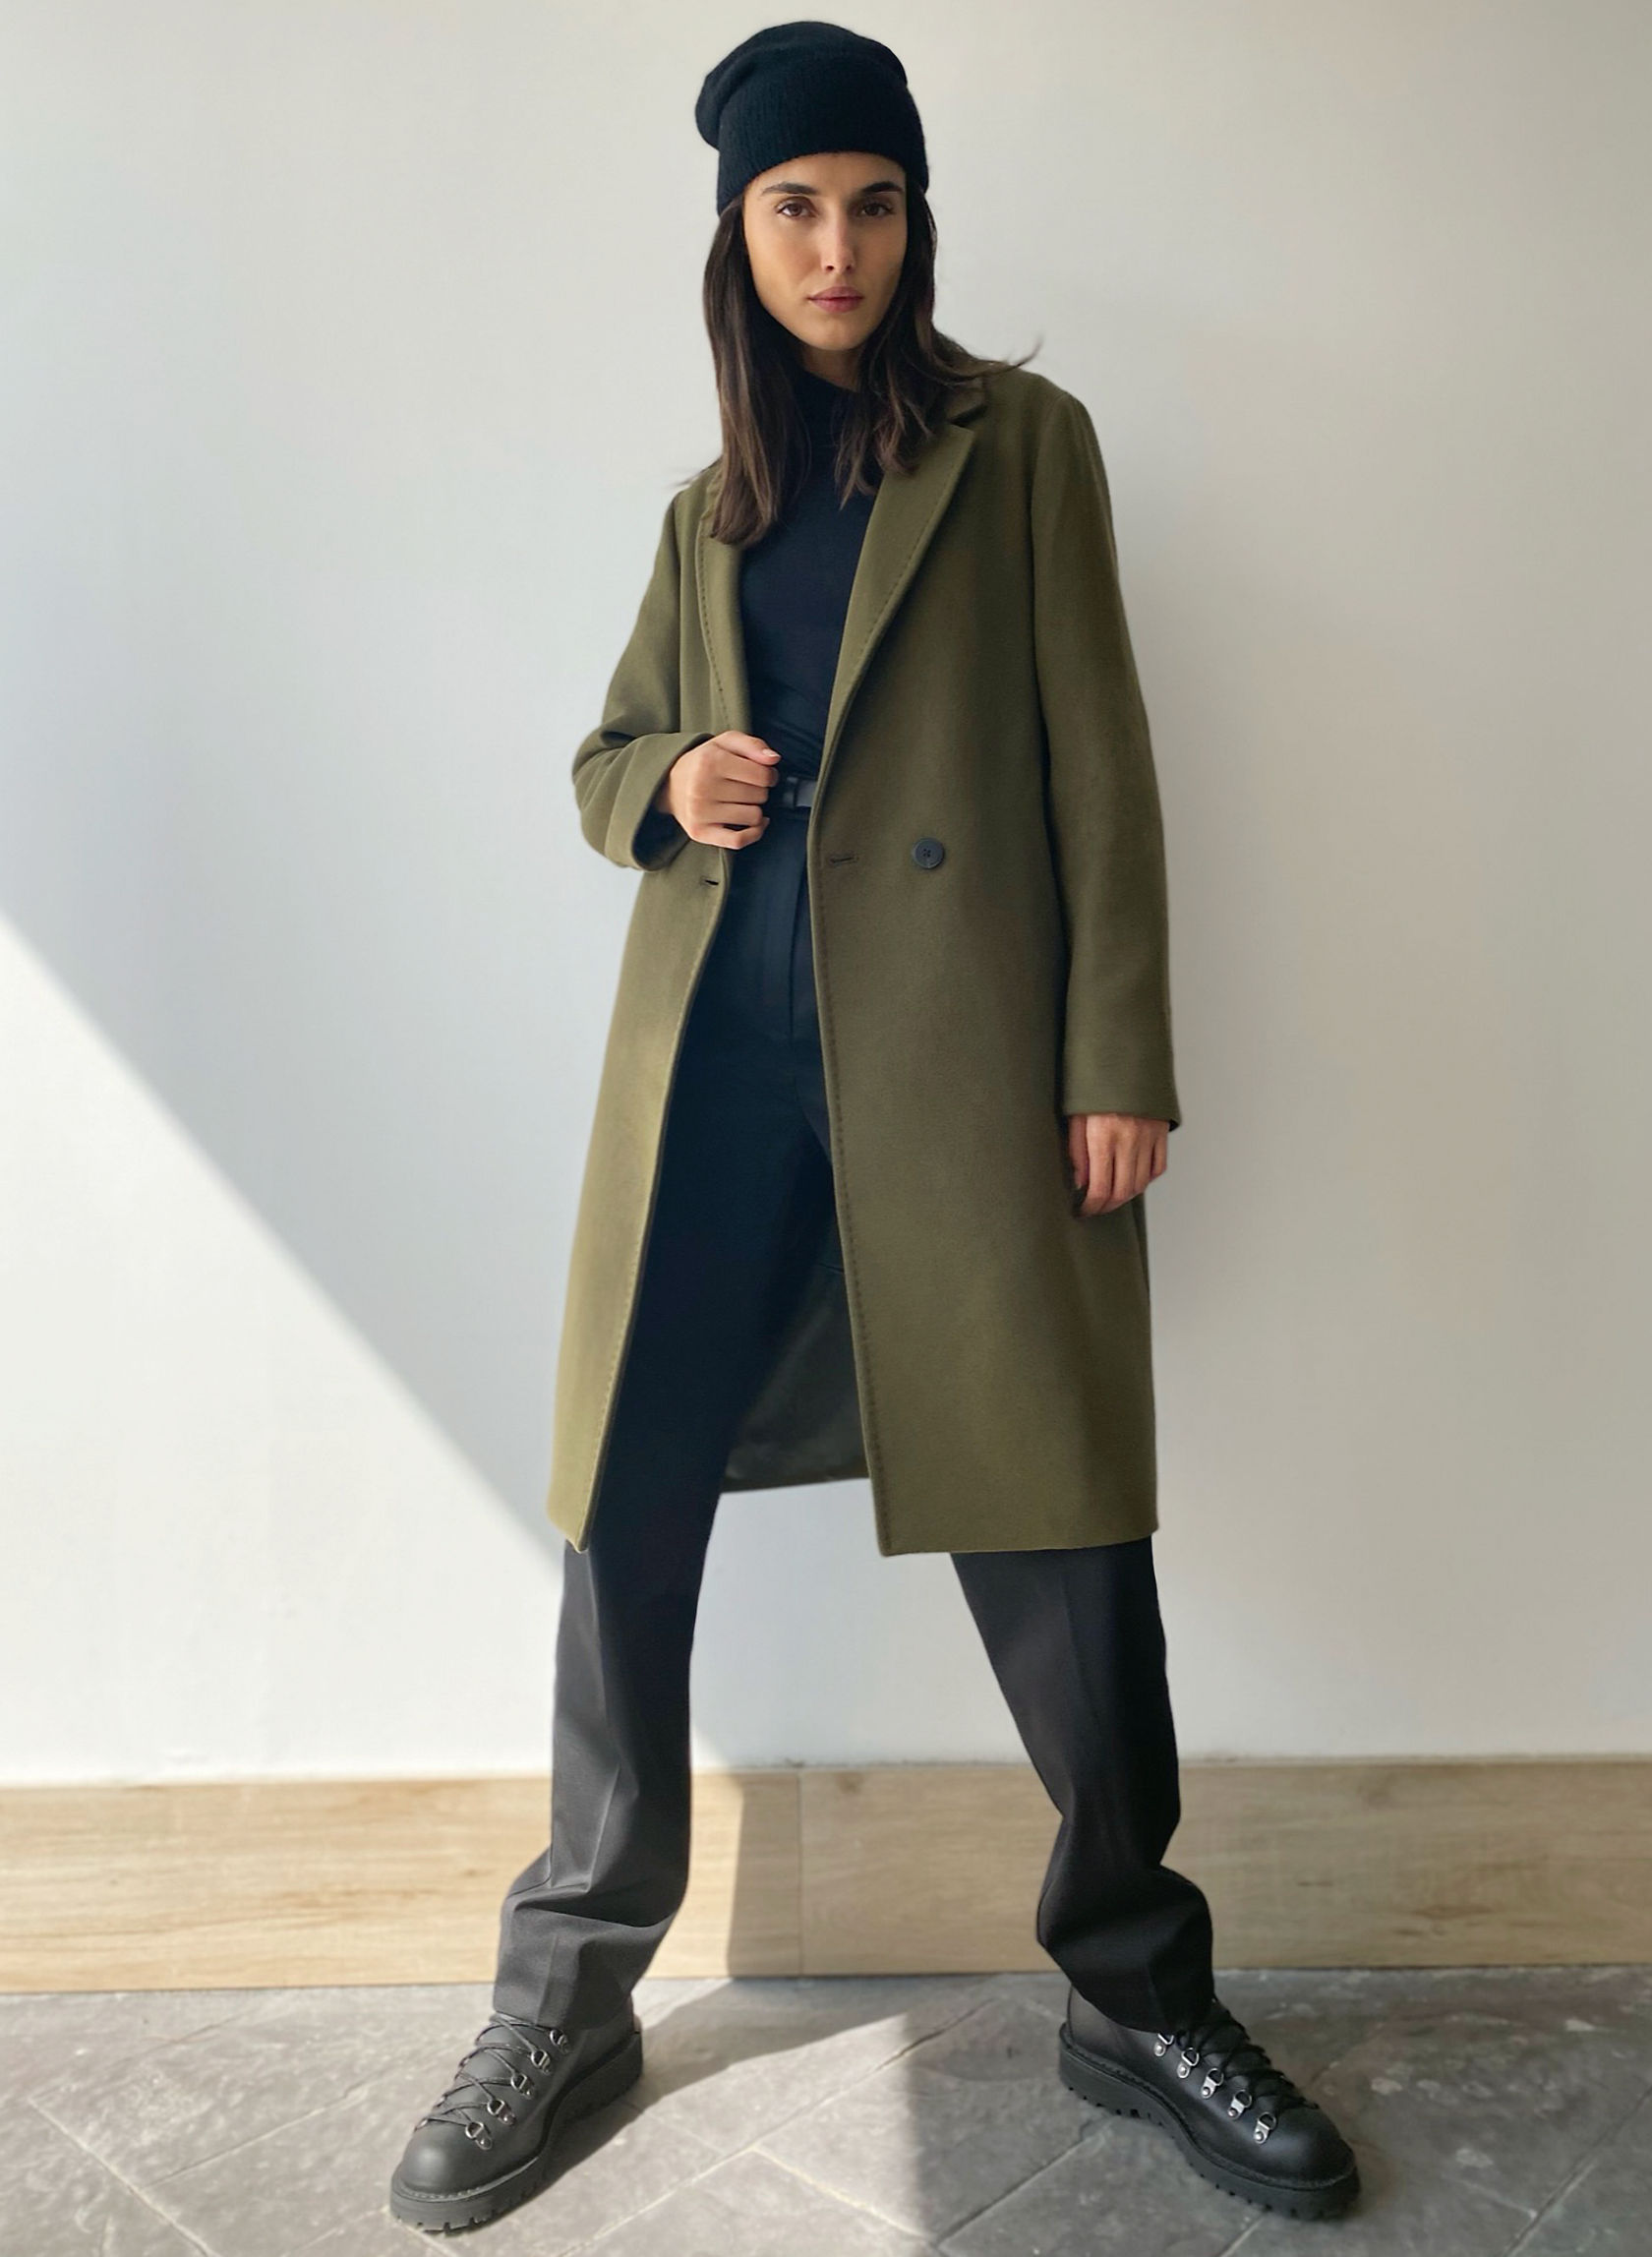 THE STEDMAN COAT - Lined, wool coat